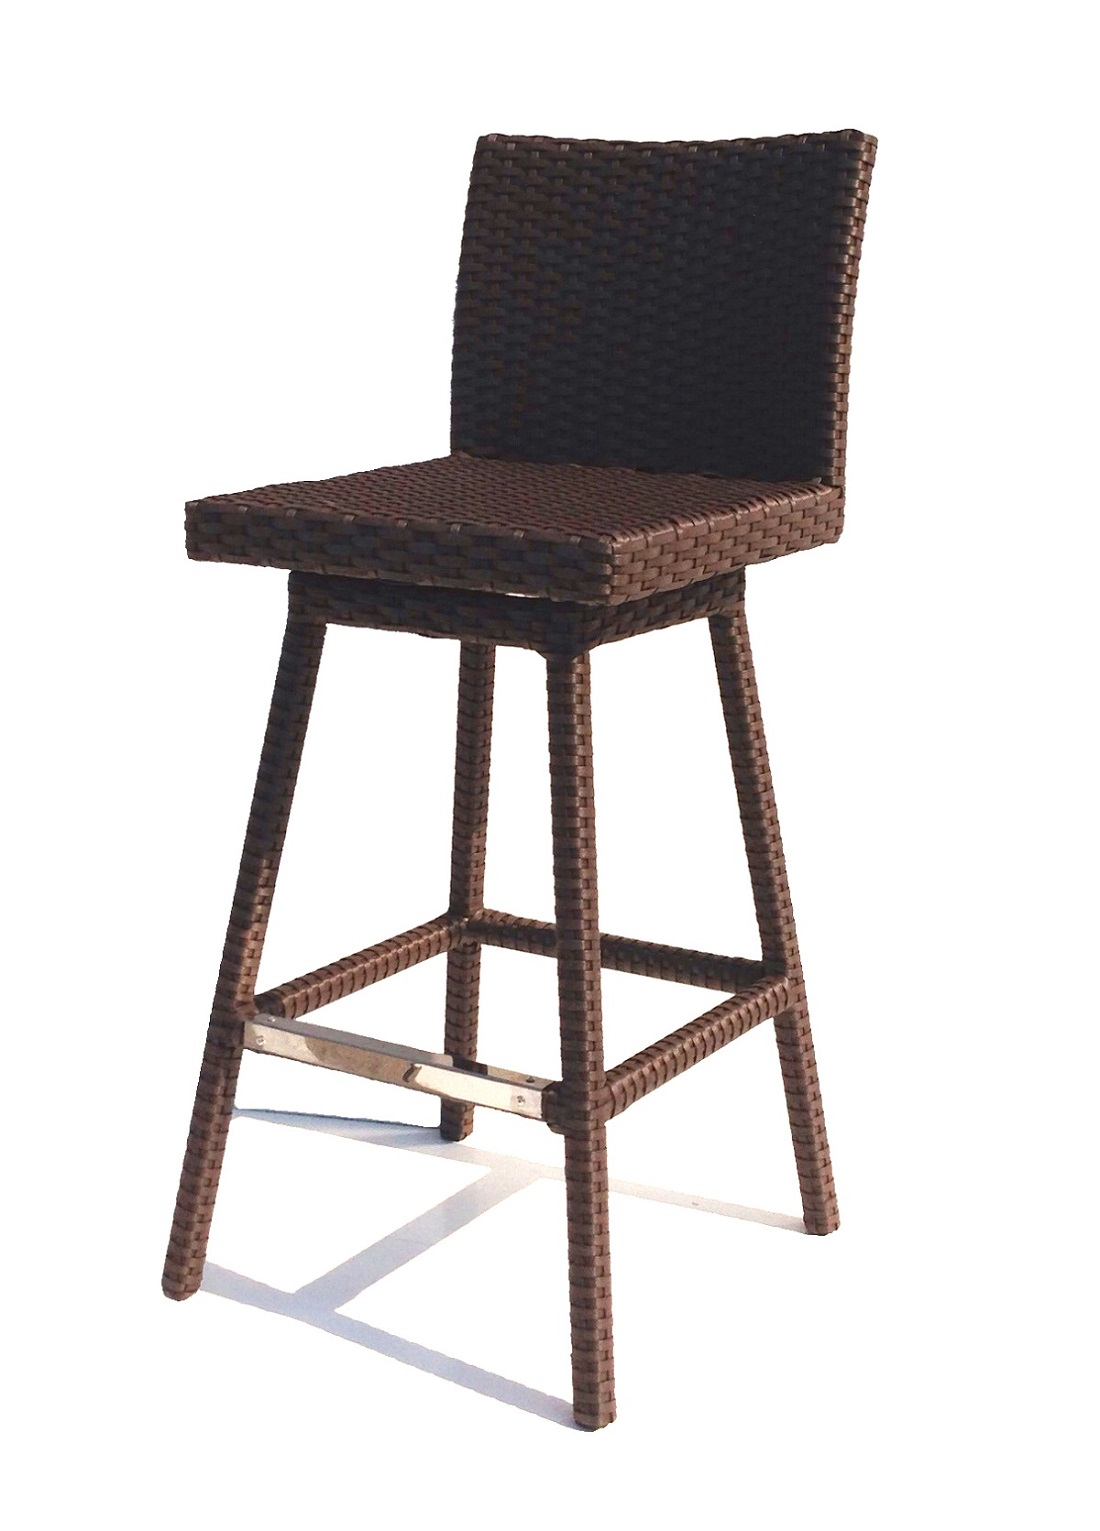 Outside Bar Chairs Sonoma Outdoor Wicker Swivel Barstool